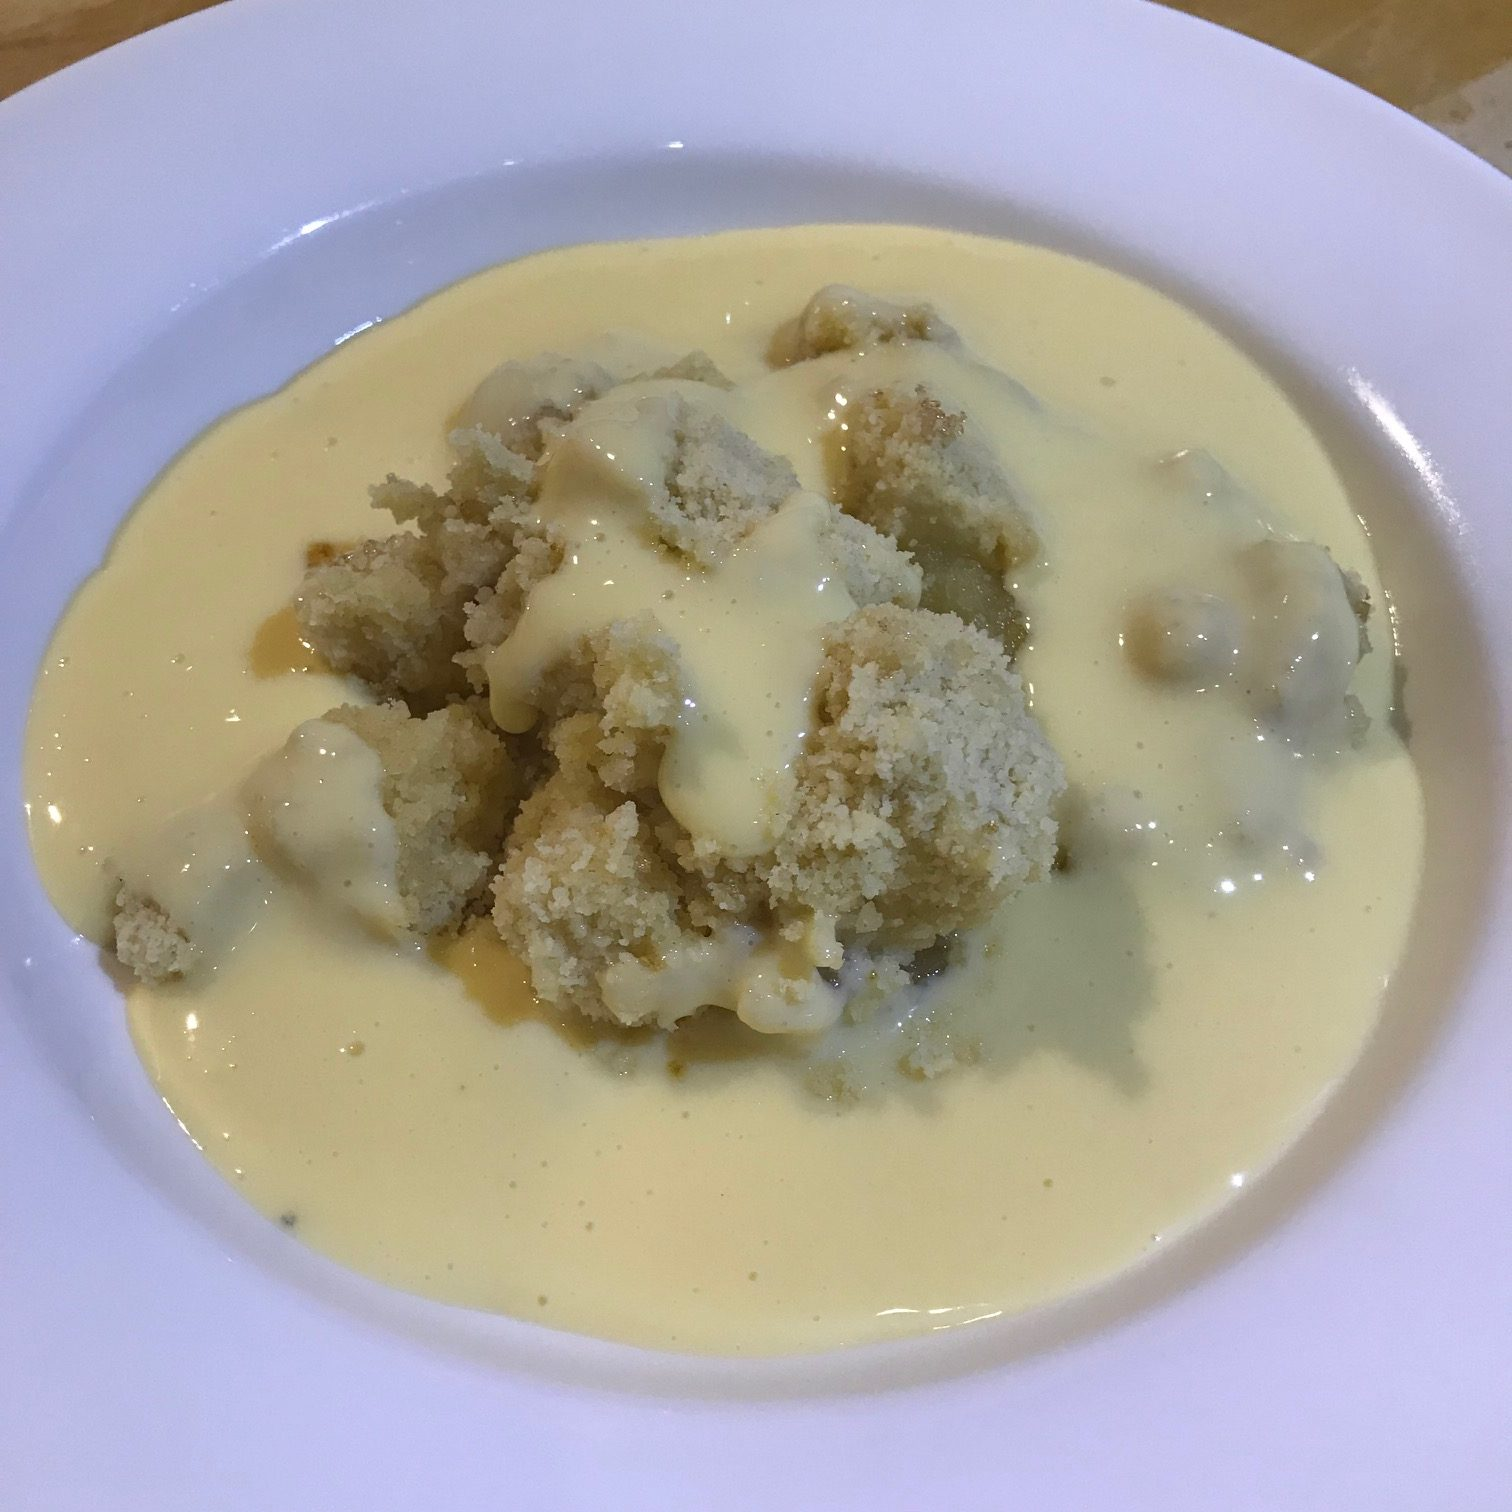 20190912 - Bramley Apple Crumble with Custard